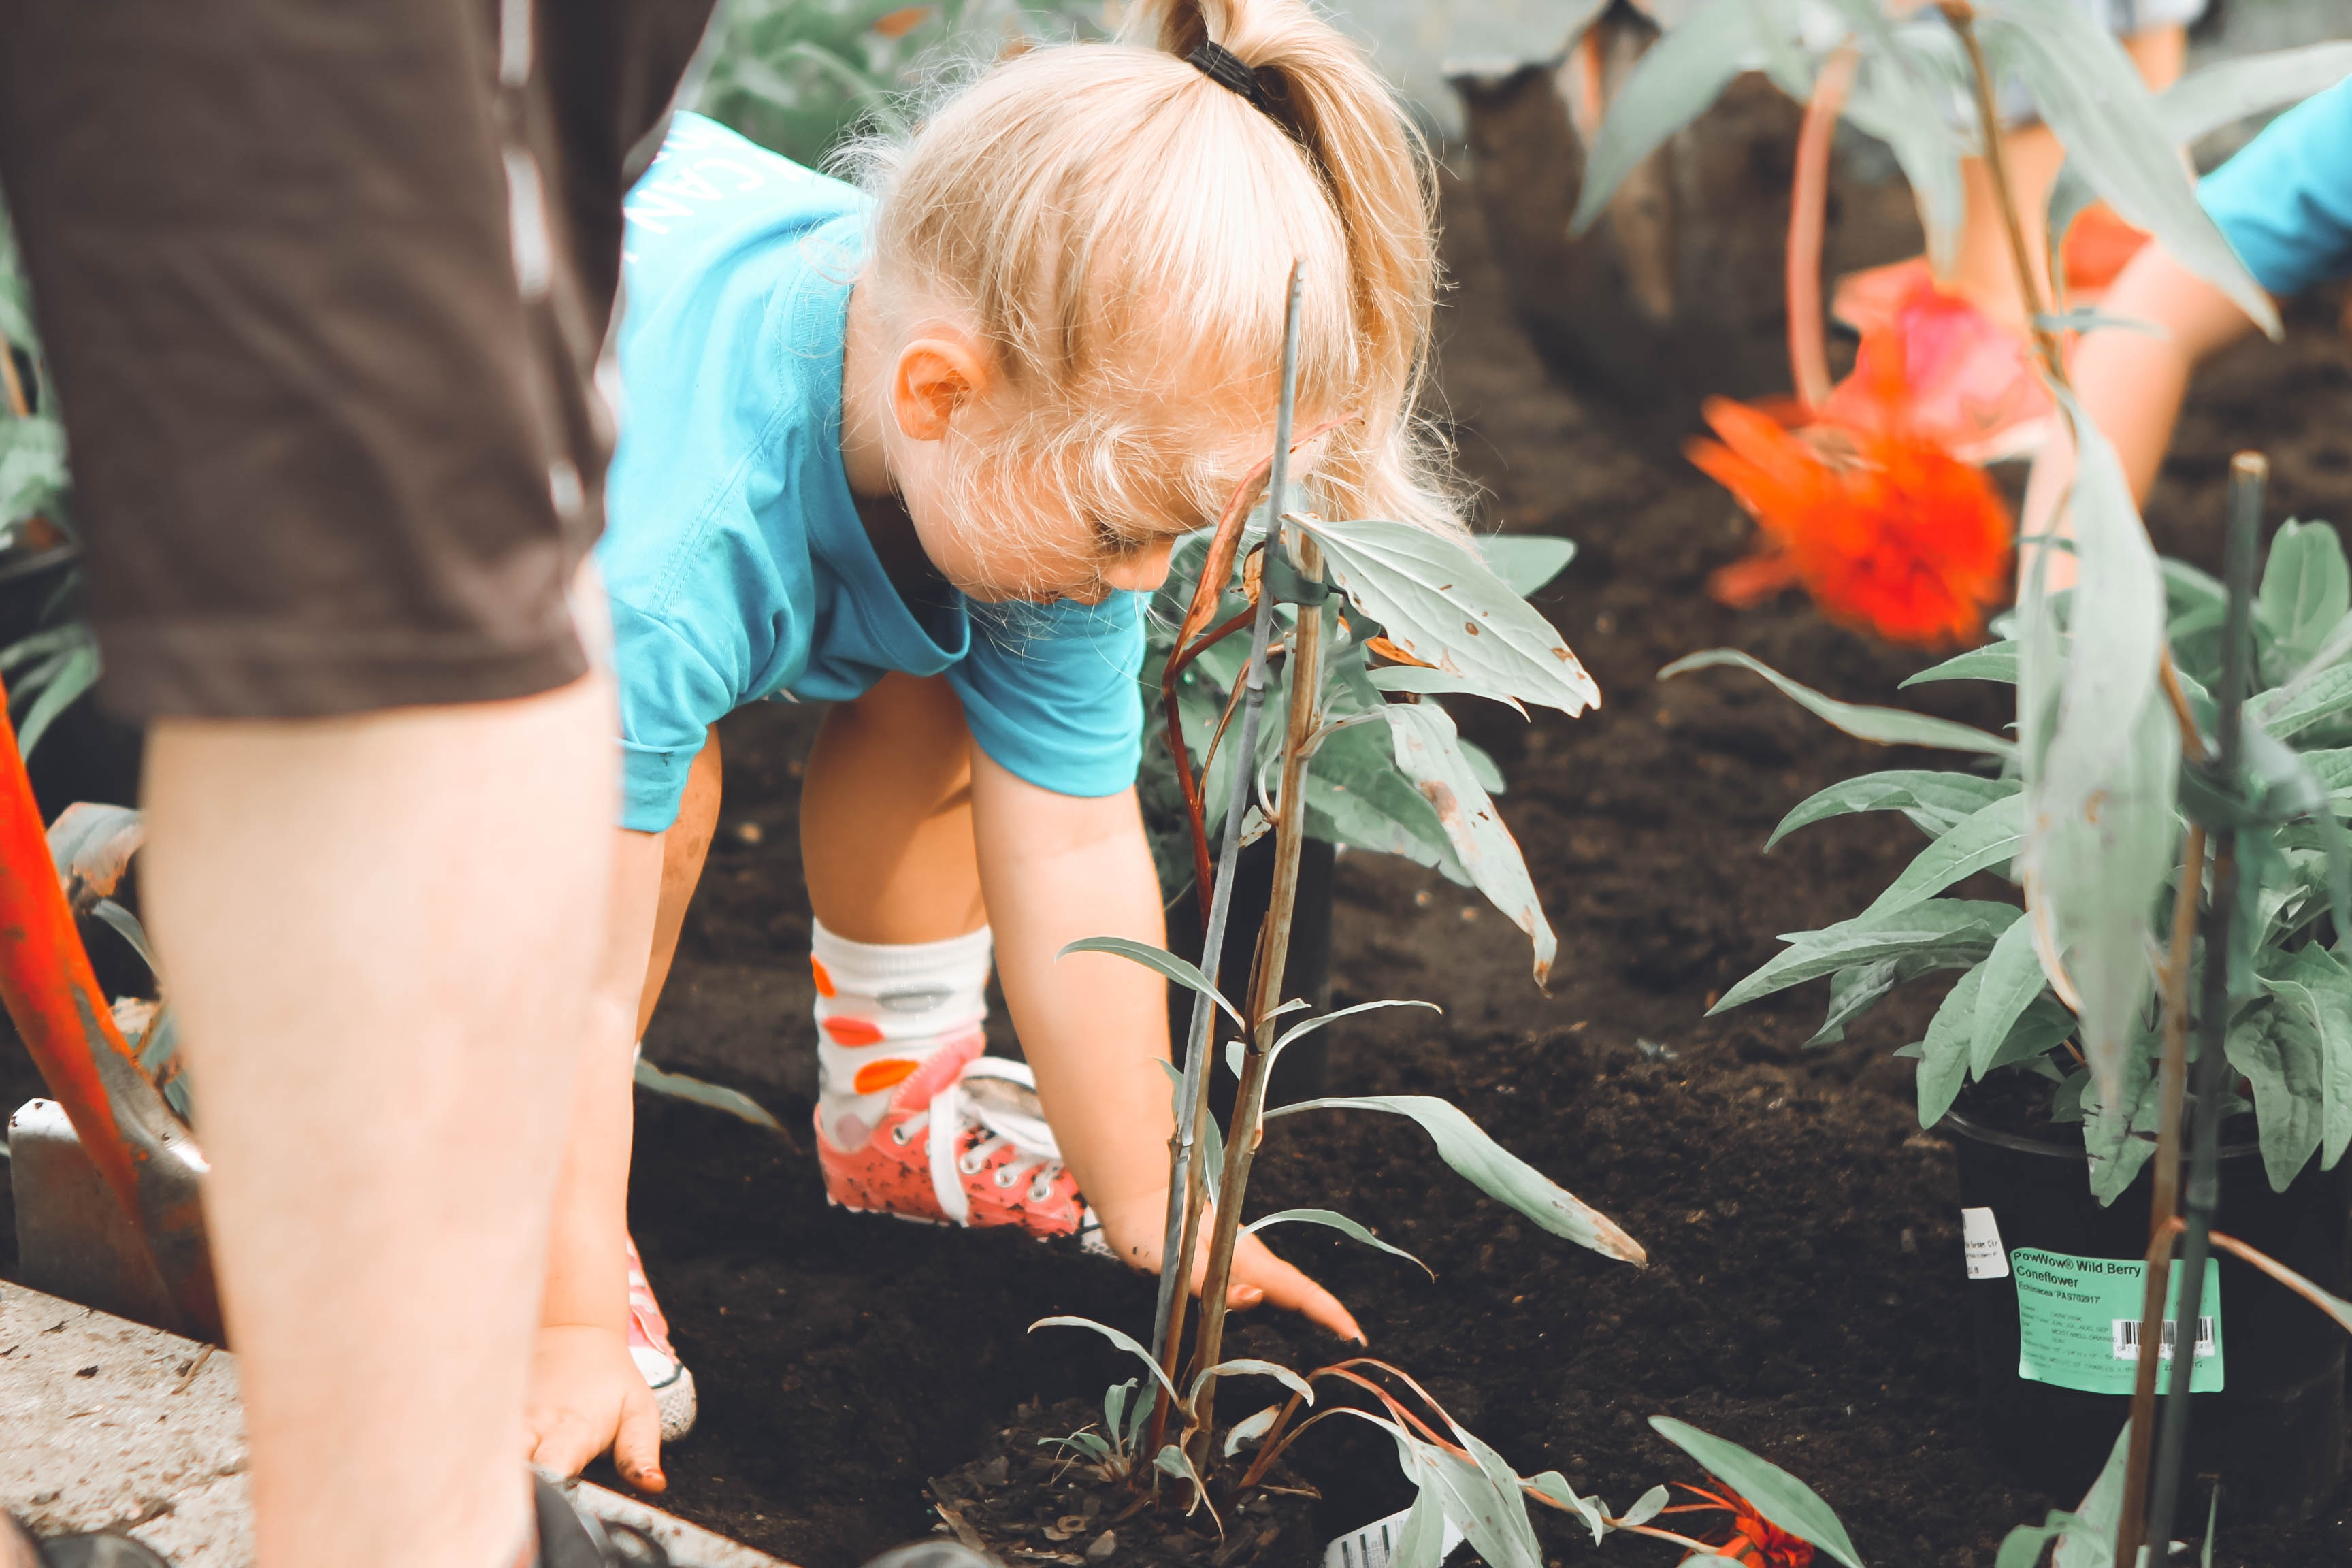 A young girl planting flowers in her garden